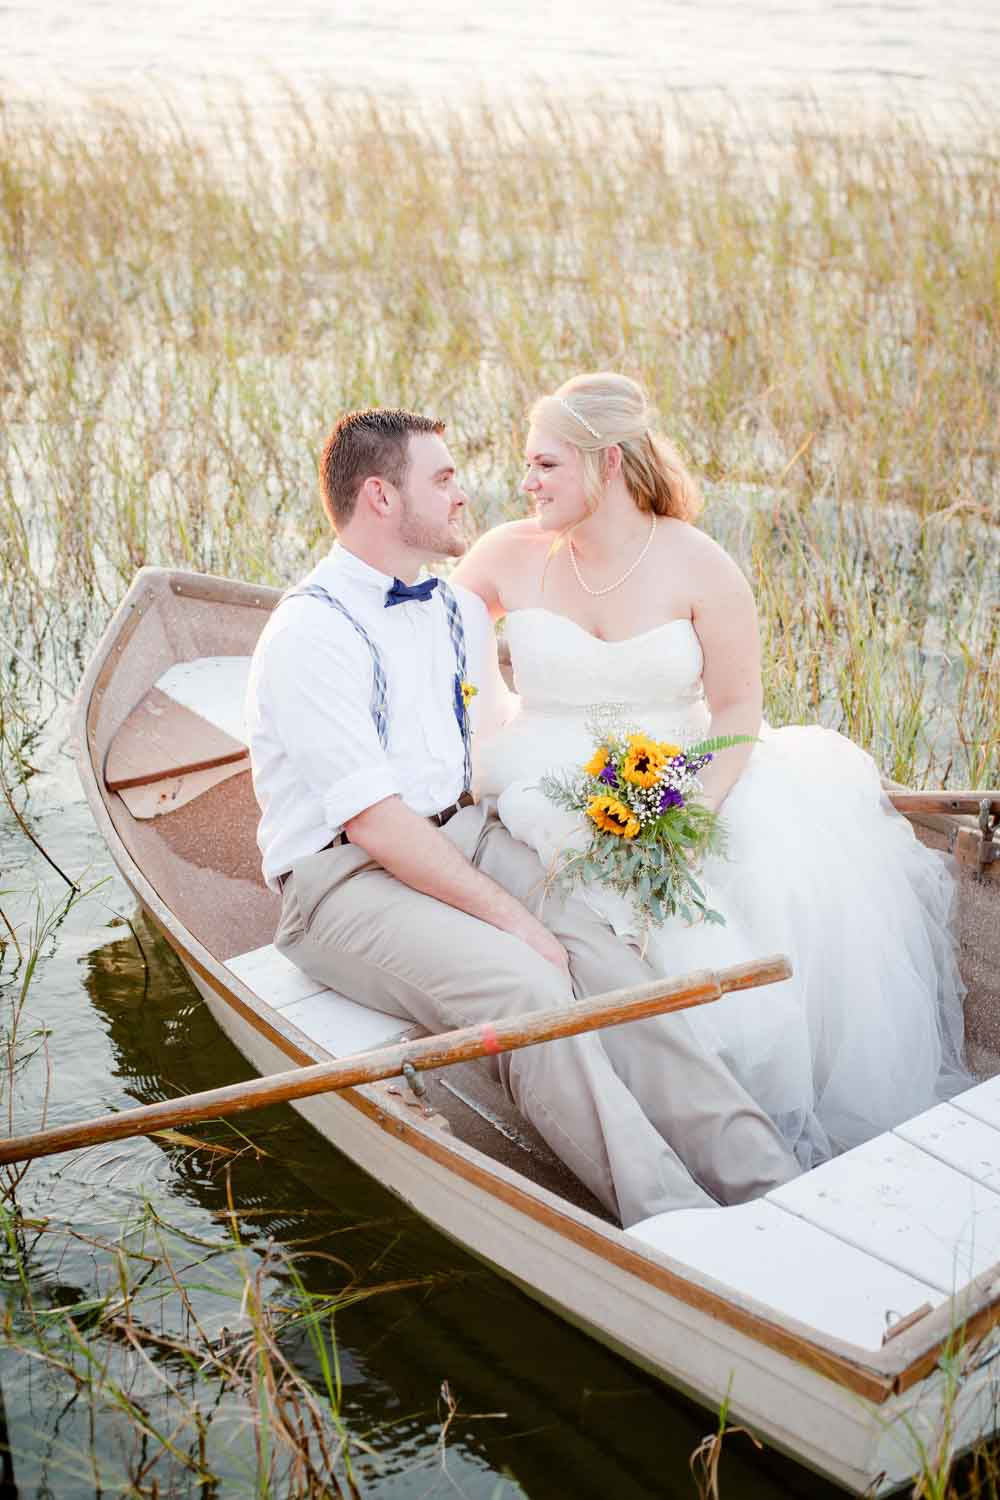 bride and groom in canoe for wedding portraits